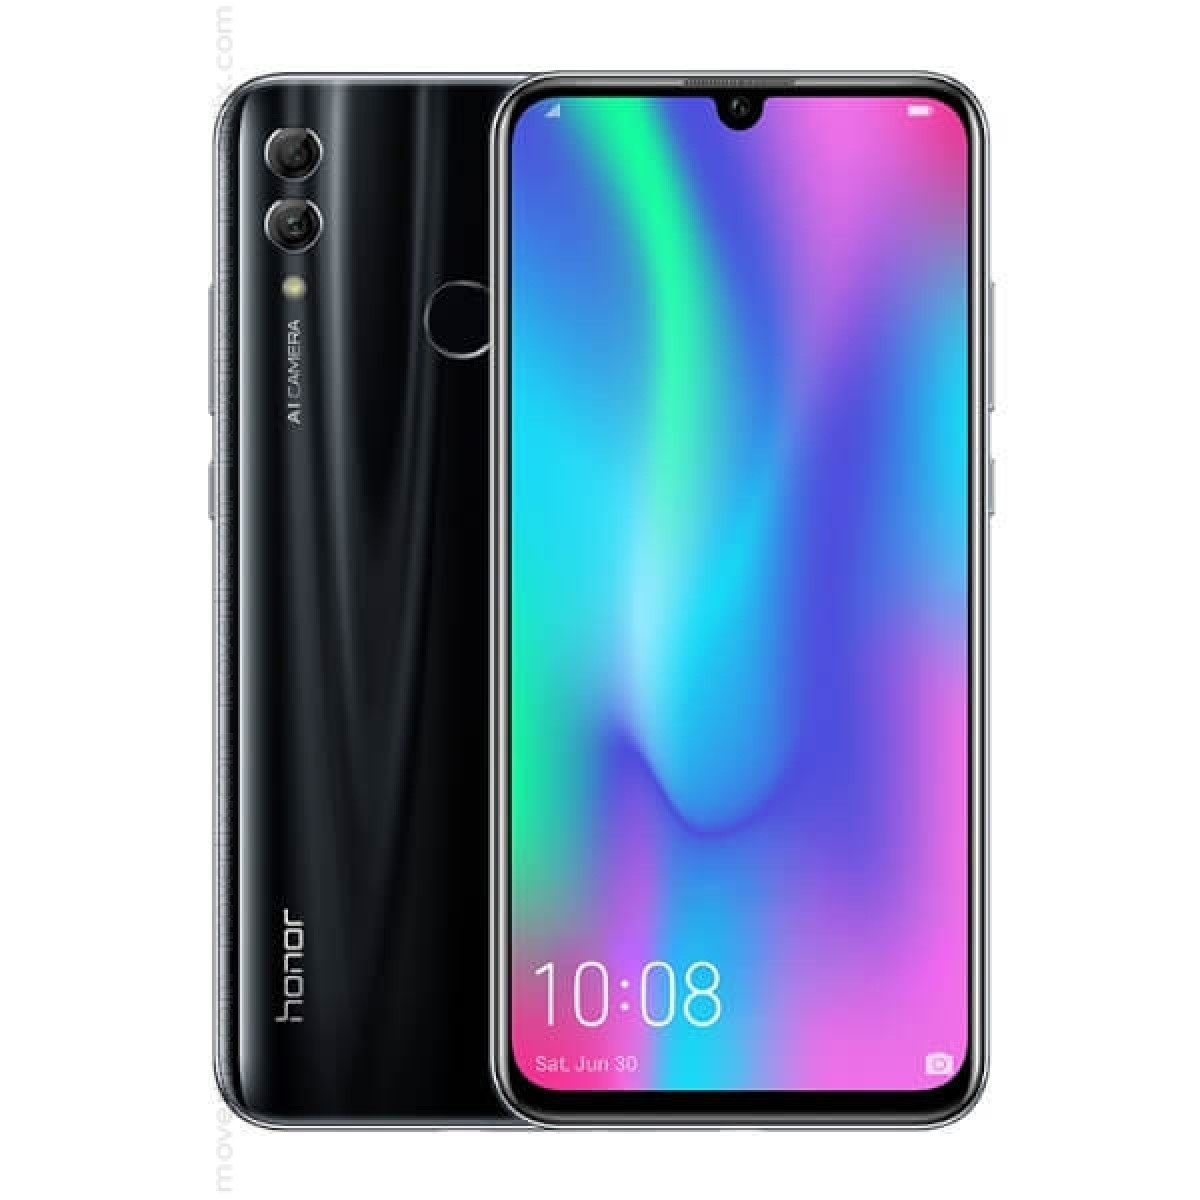 3. Honor 10 Lite – Honor's Best Budget Smartphone of 2019